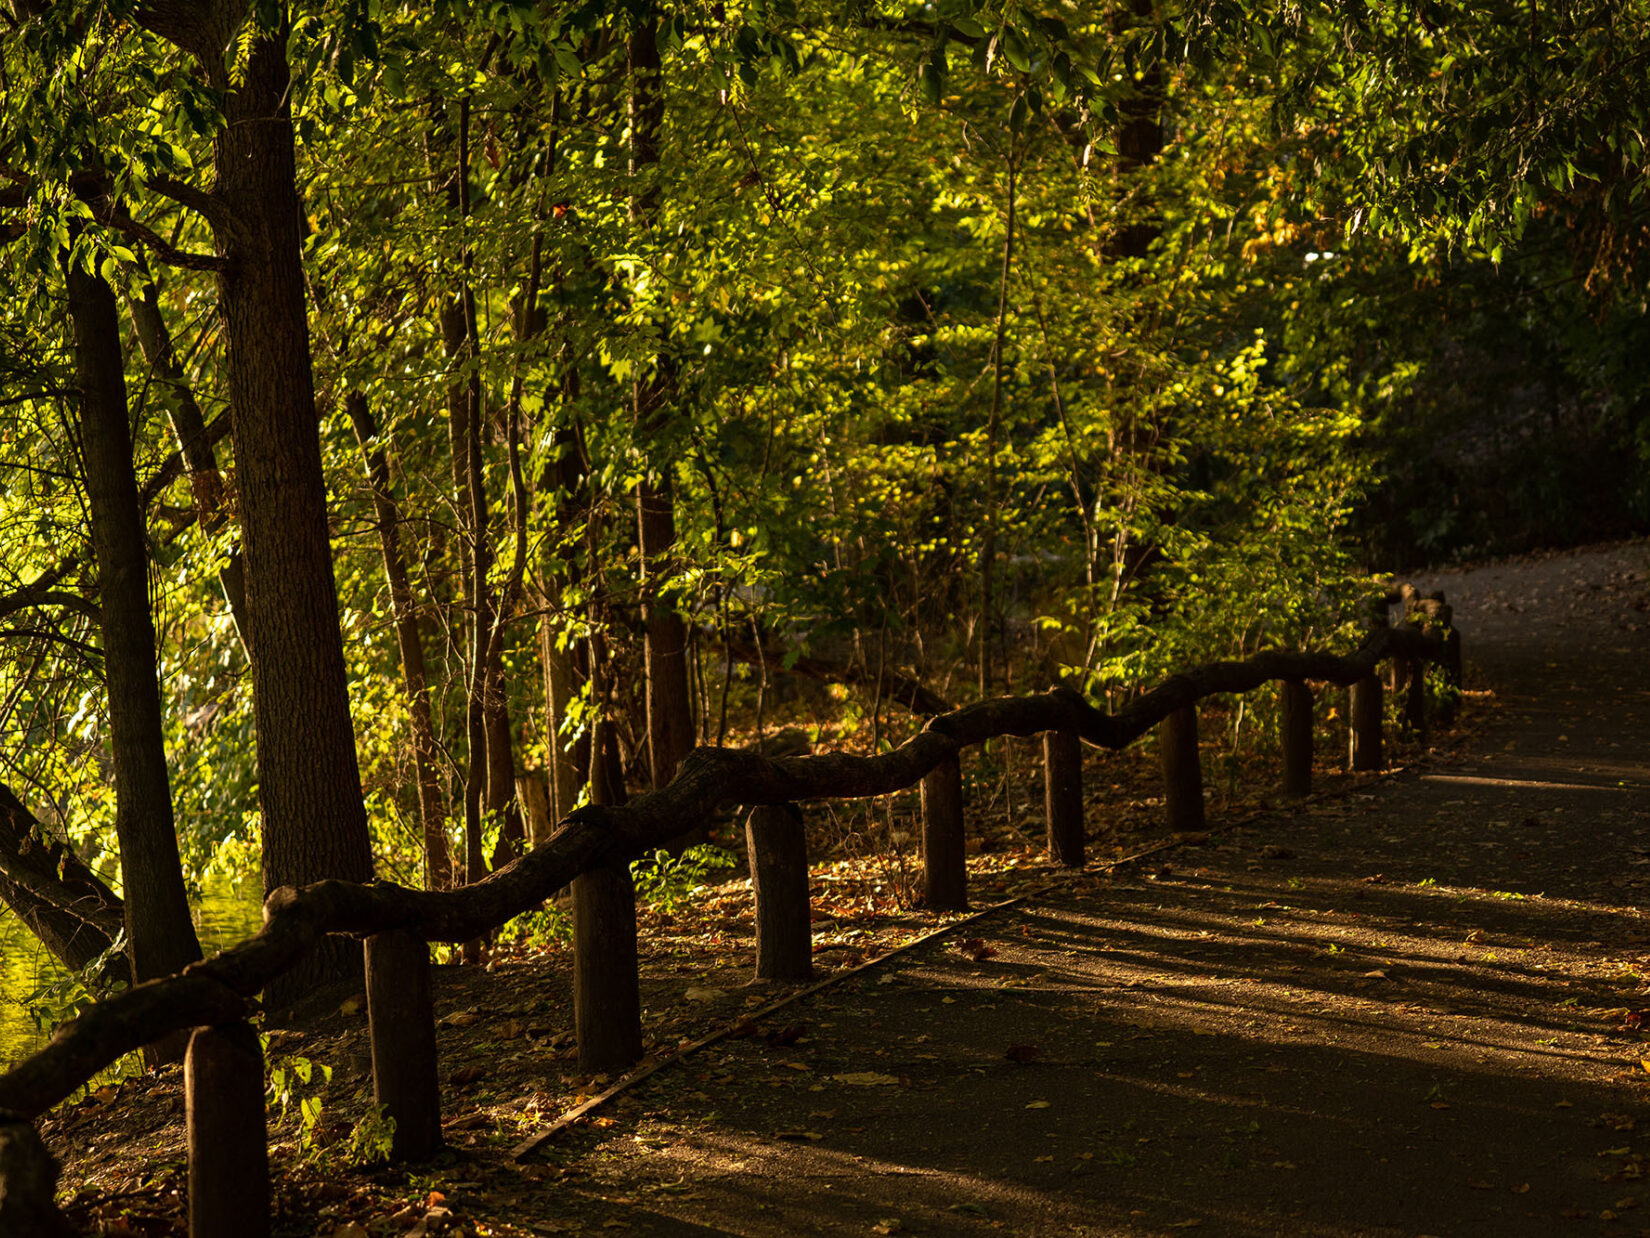 A path along the Lake in the Ramble with dramatic shadows cast in late afternoon